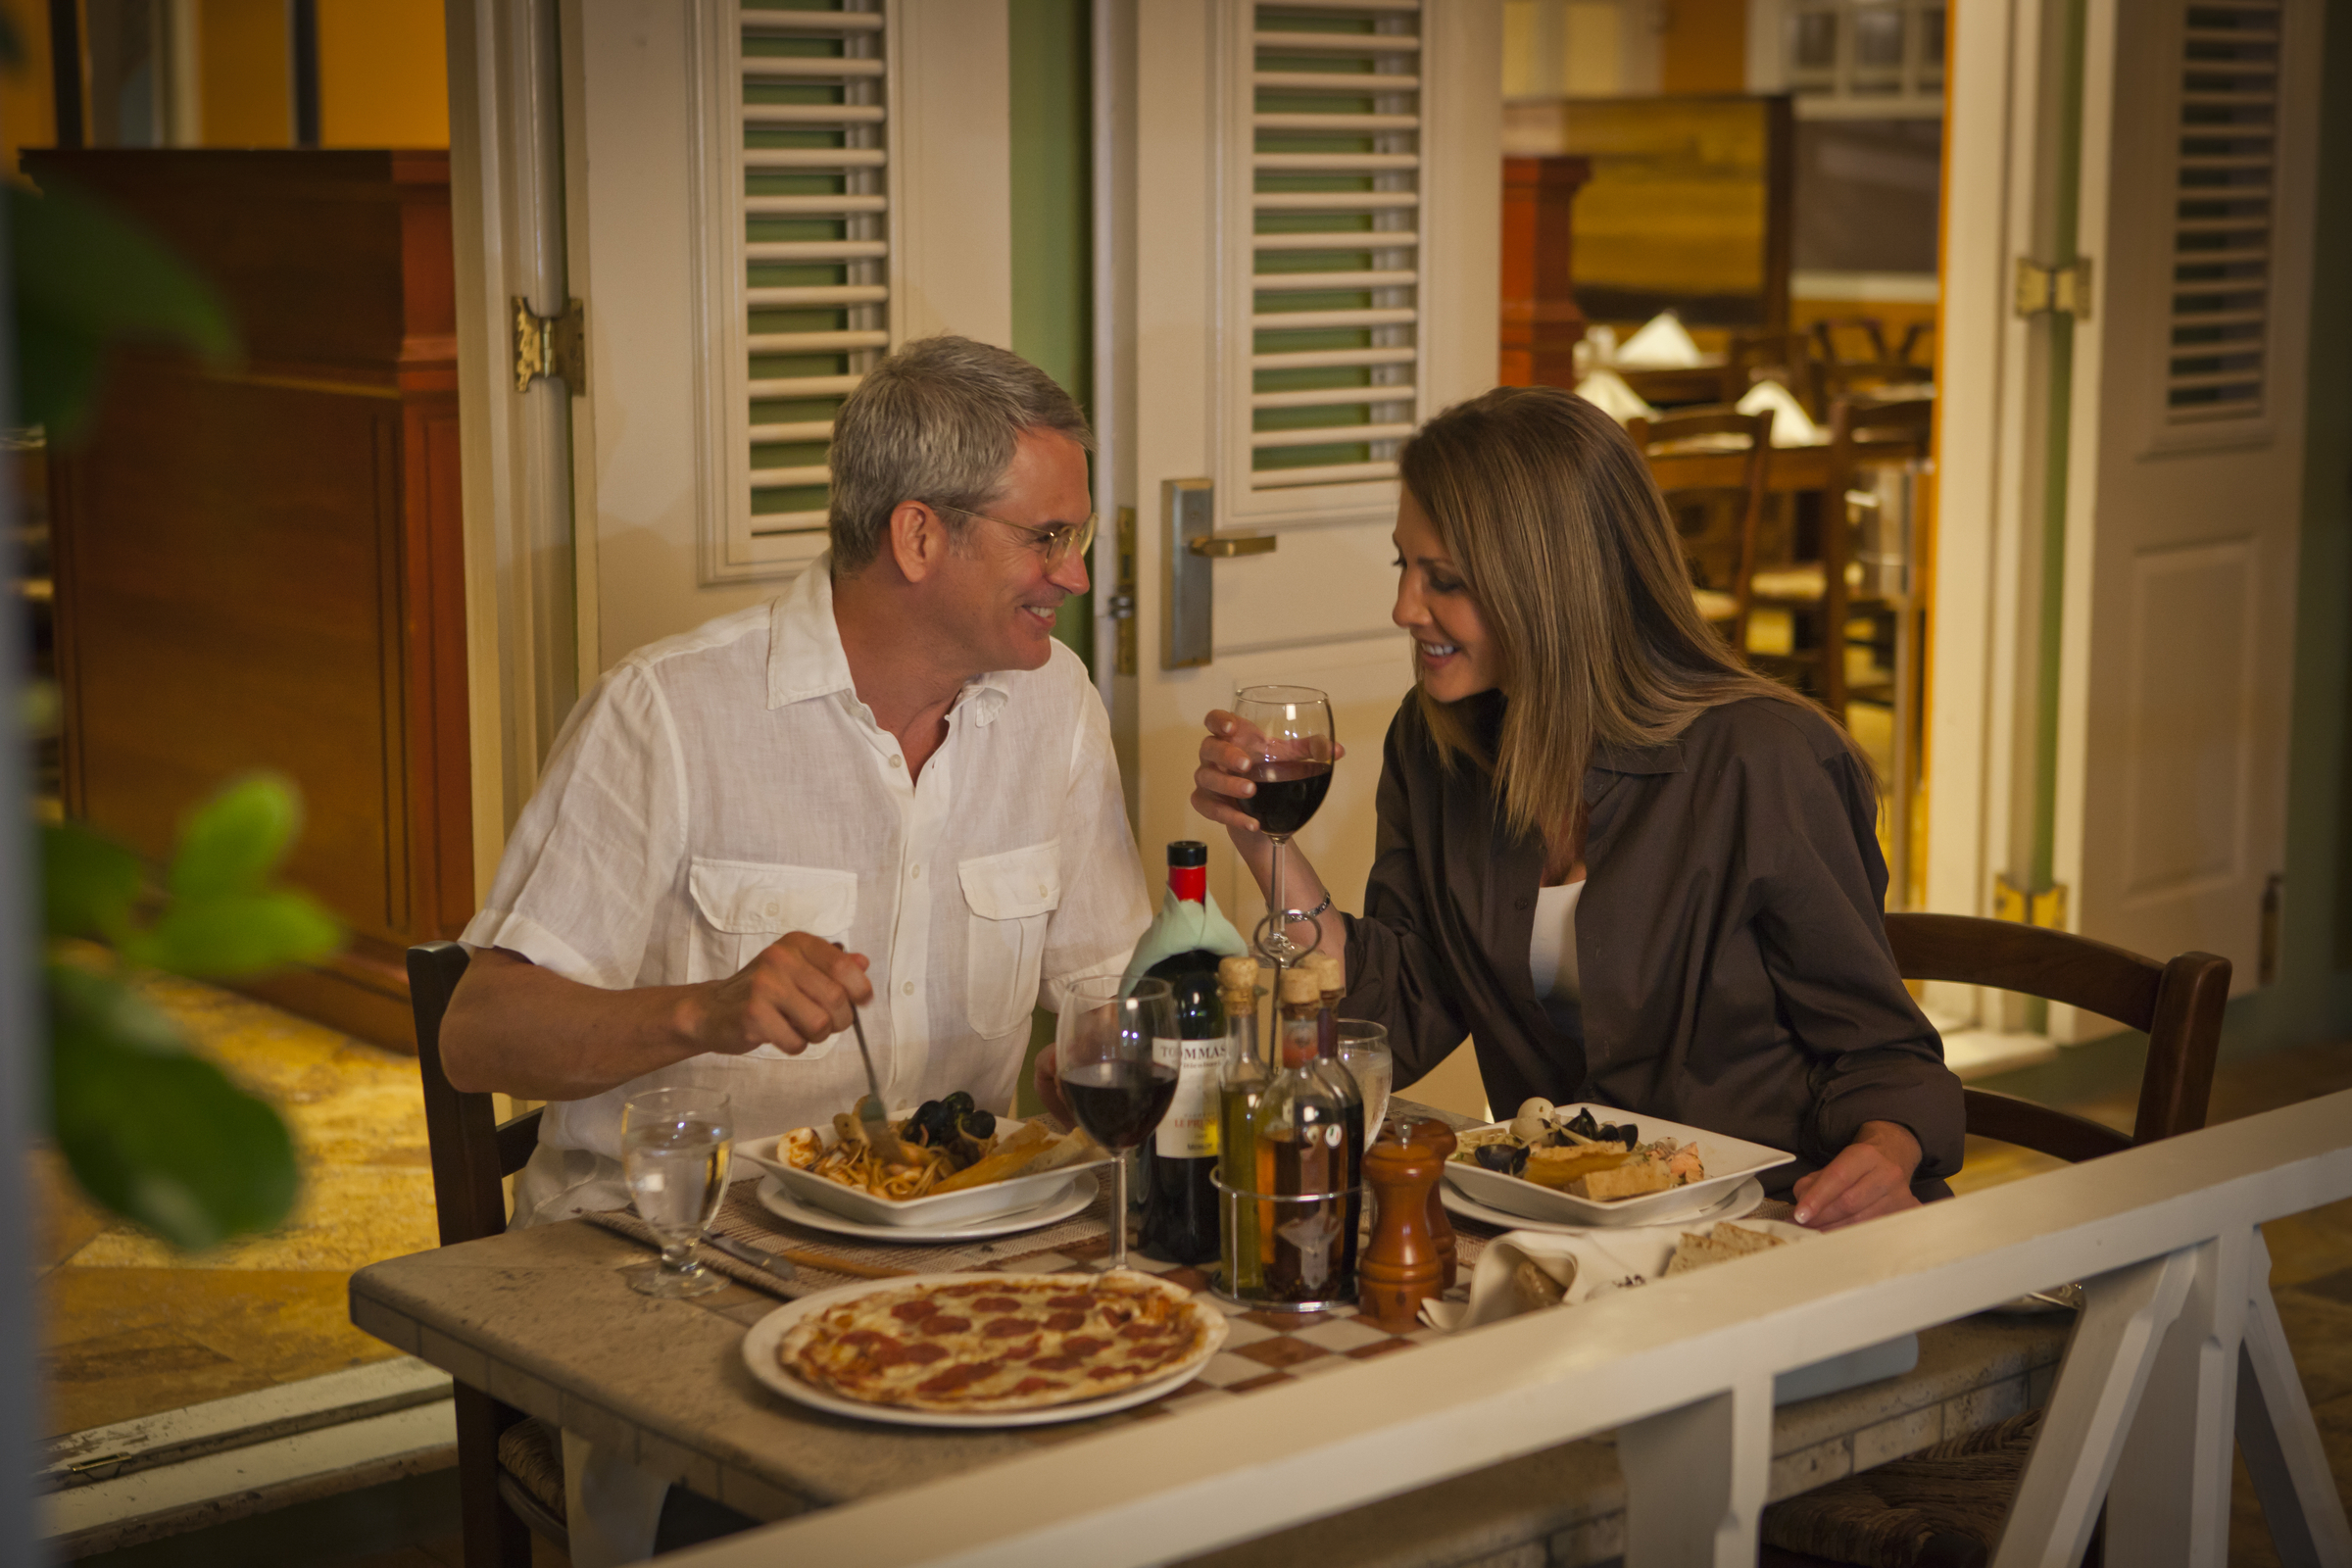 At the heart of The Crane Village, award-winning D'Onofrio's Trattoria is a special treat.